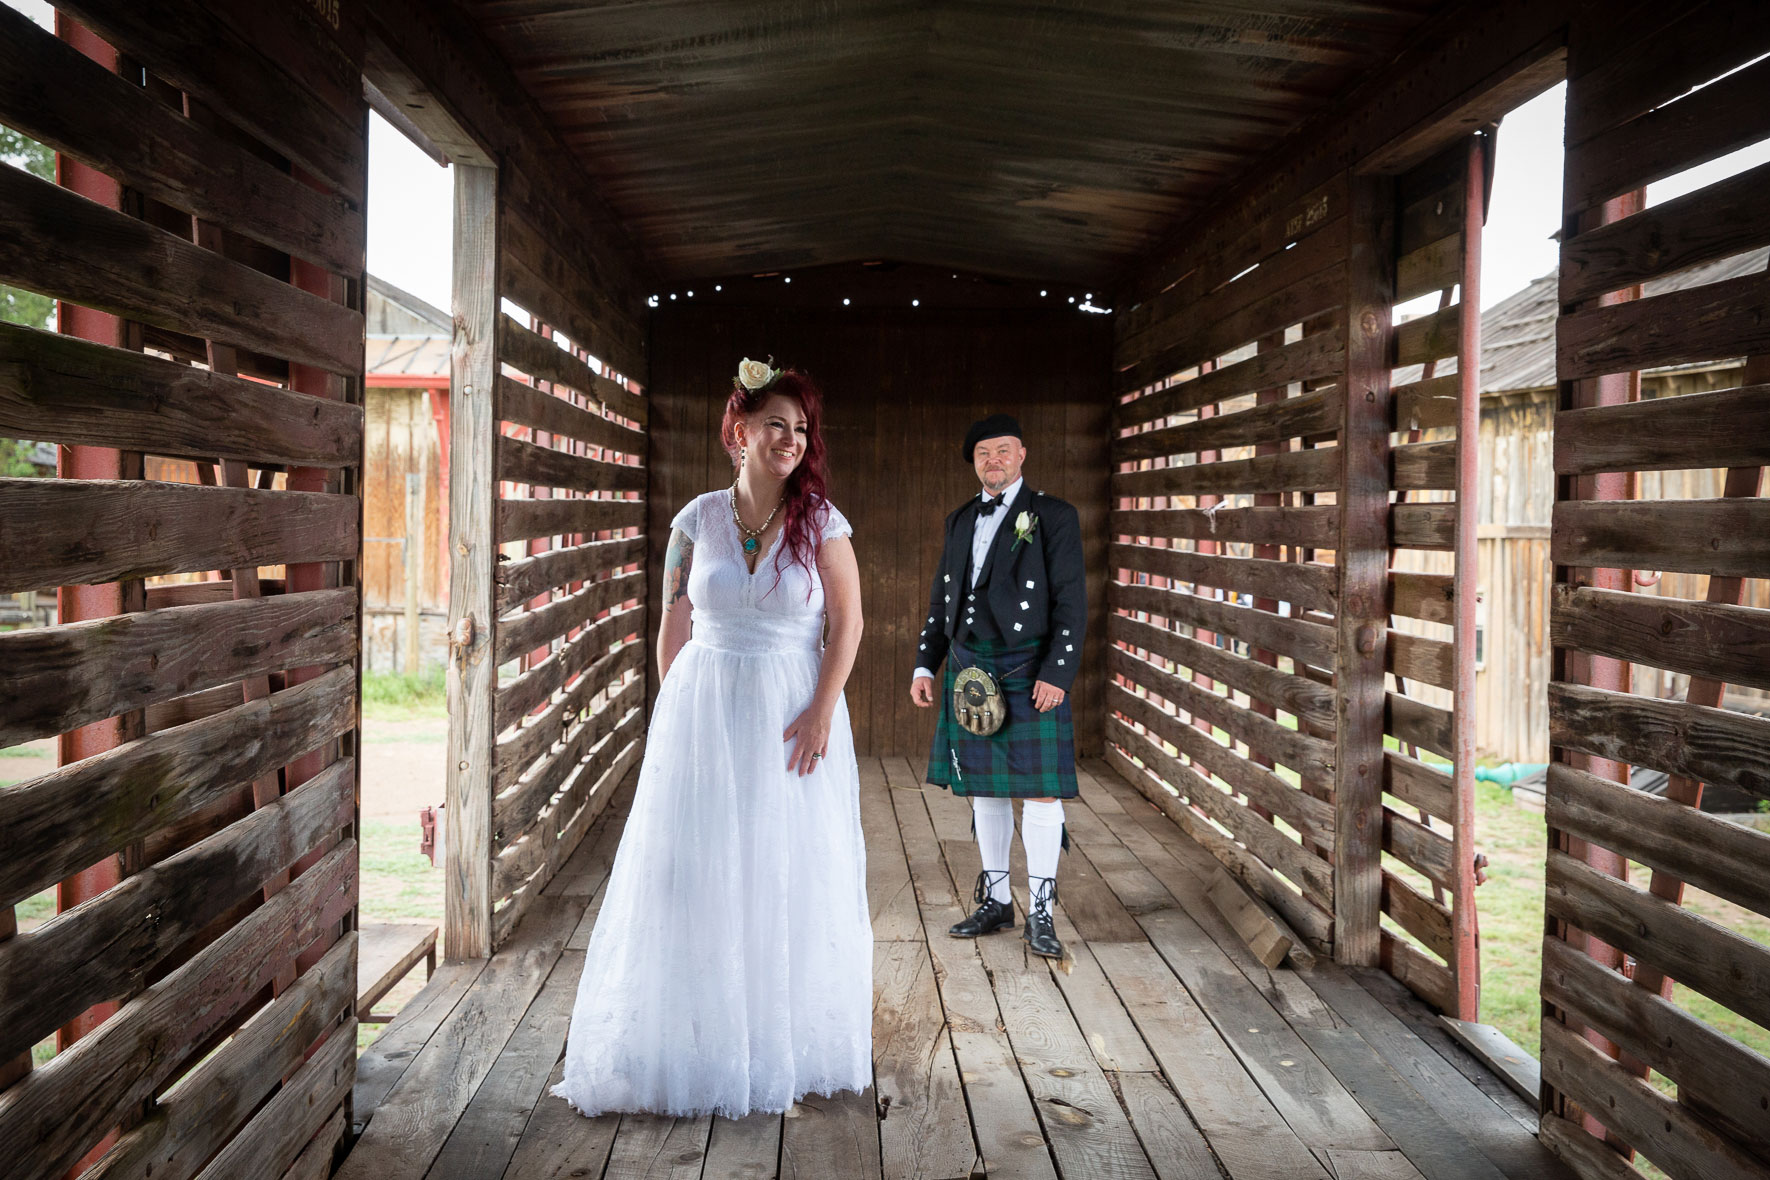 Eaves Movie Ranch Wedding, Santa Fe, NM